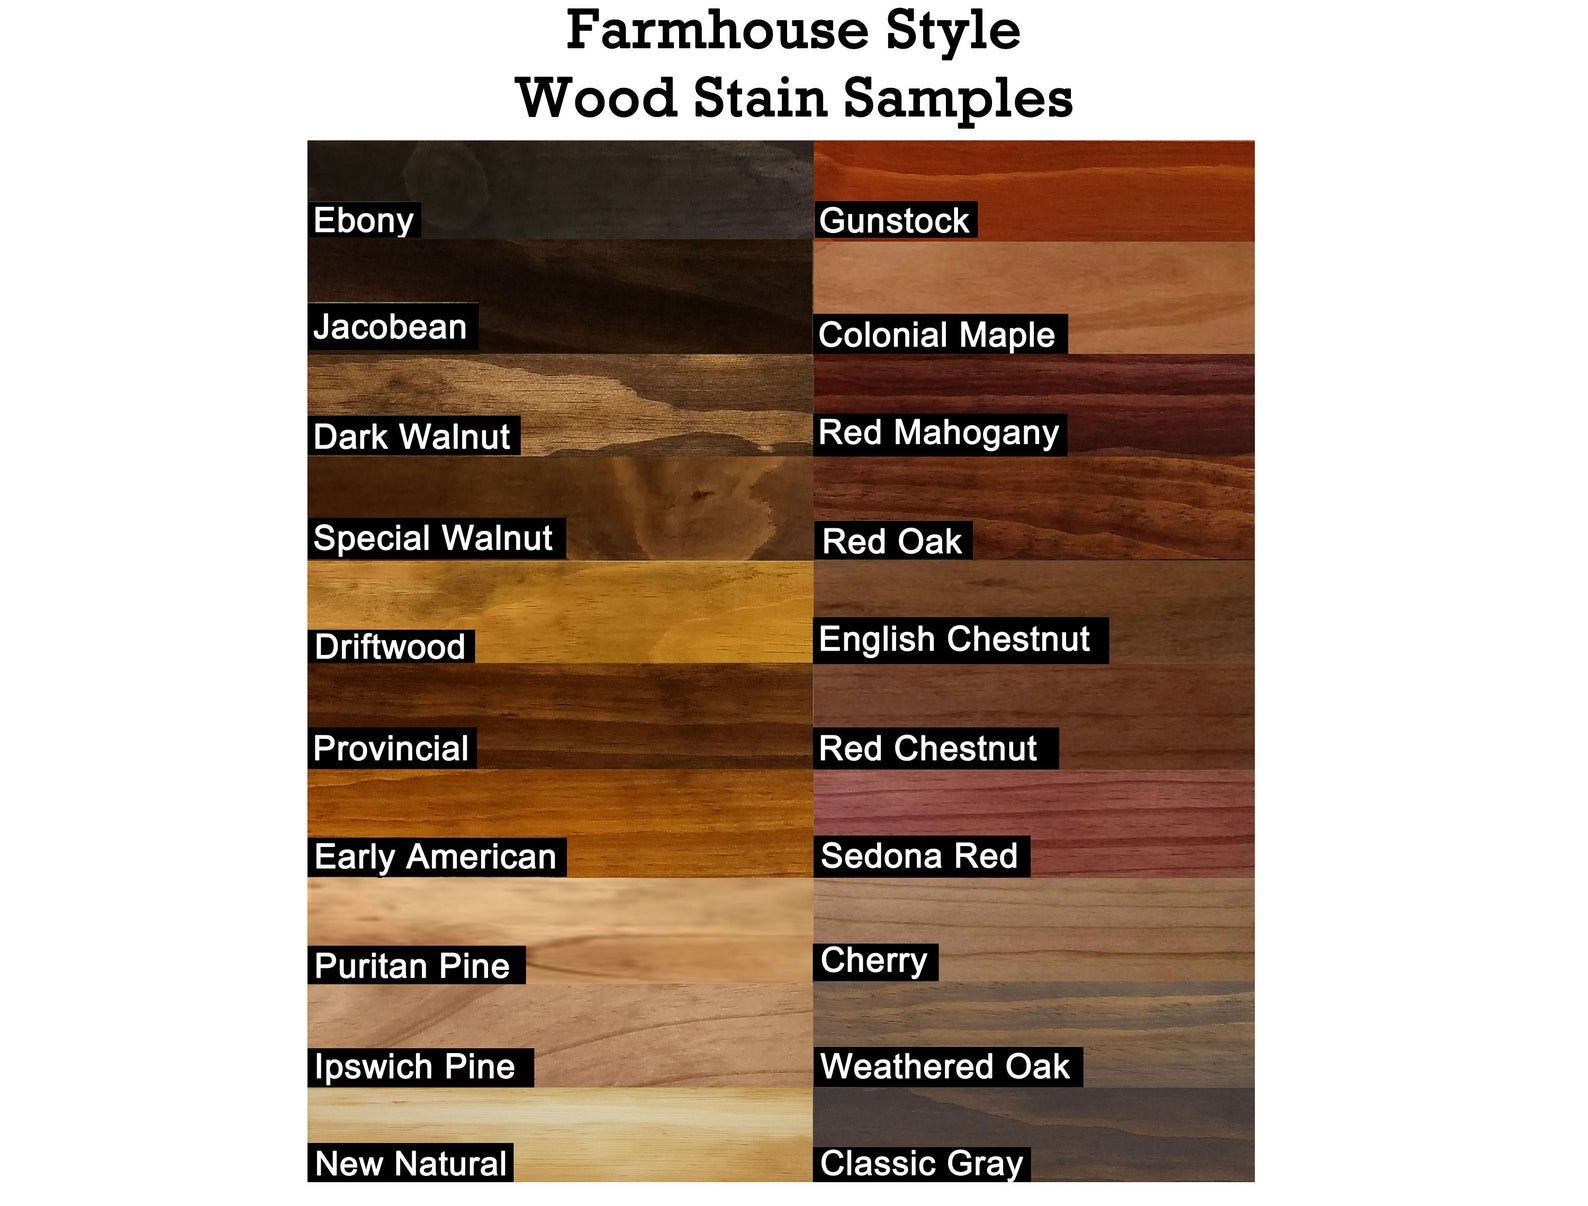 Farmhouse stain samples wood tile samples of stain